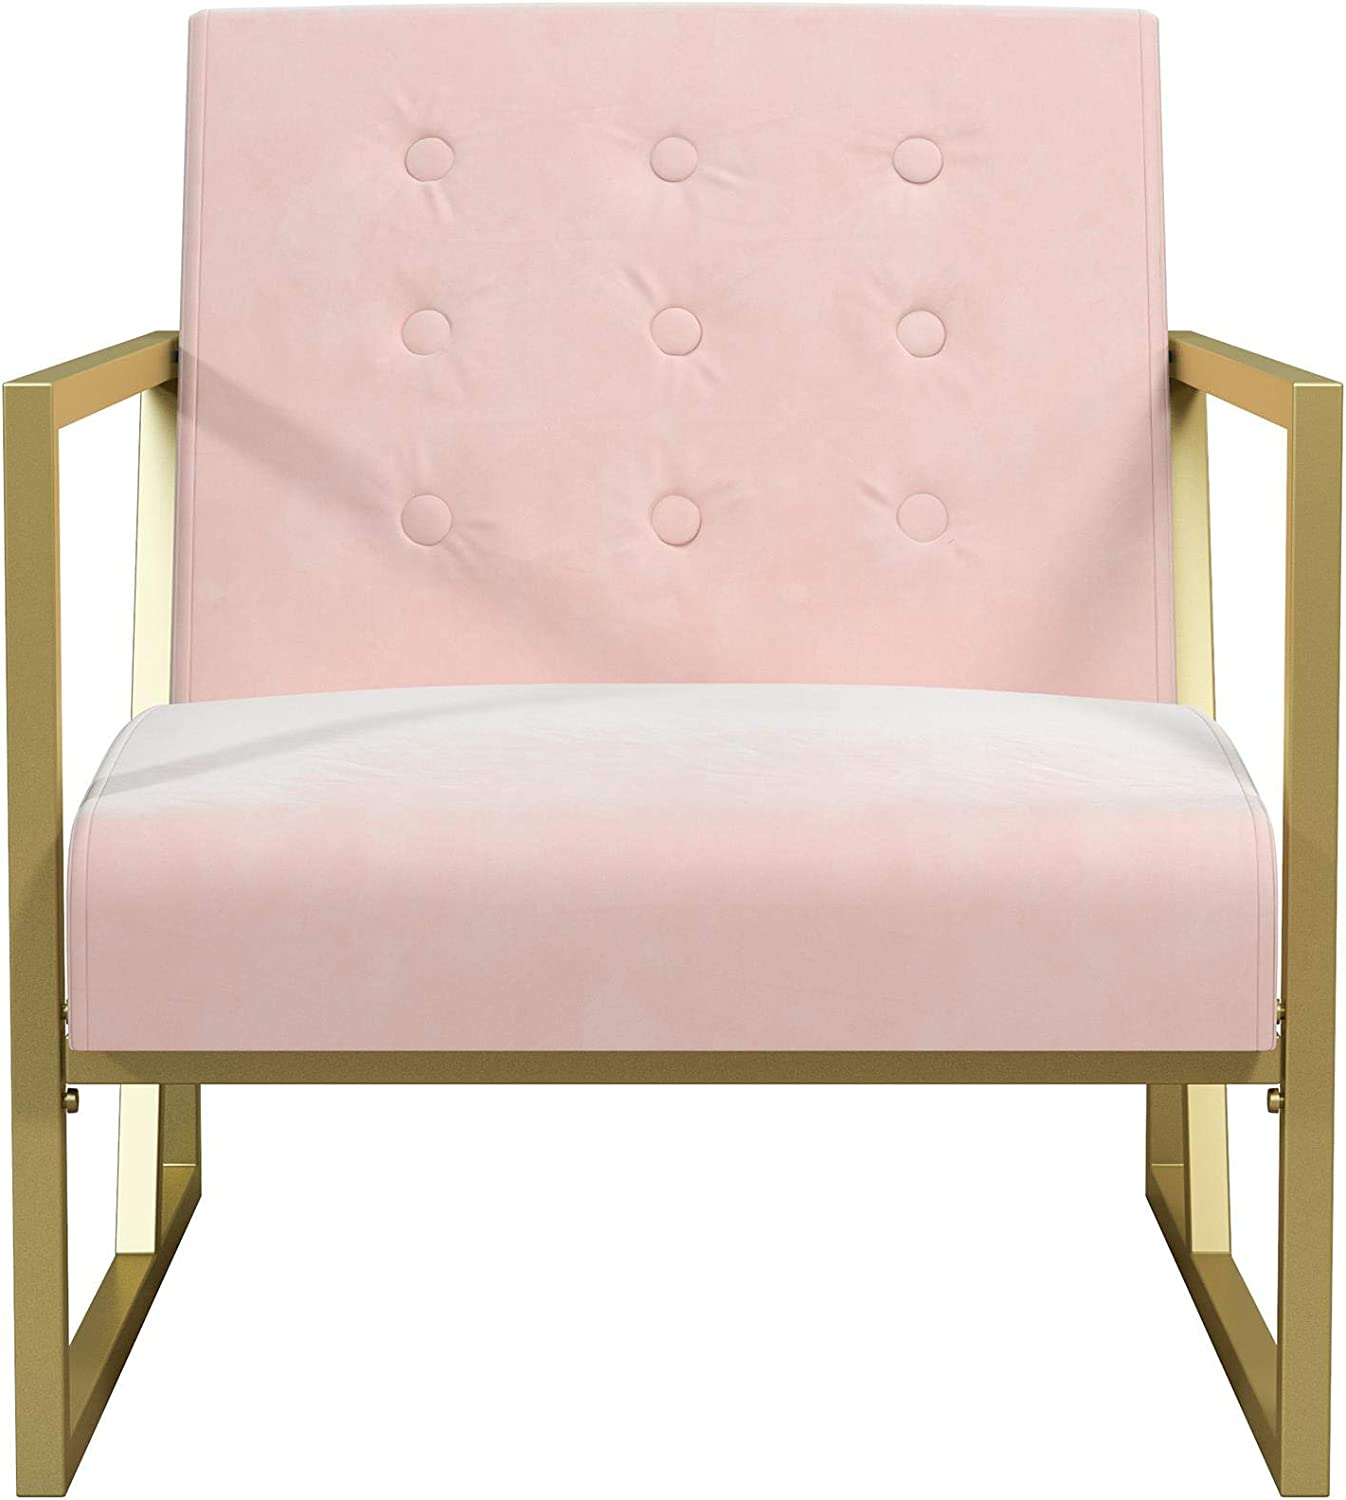 Gold Frame /& Bleached Teal Velvet Upholstery Chairs CosmoLiving by Cosmopolitan 2231679CL Lexington Modern